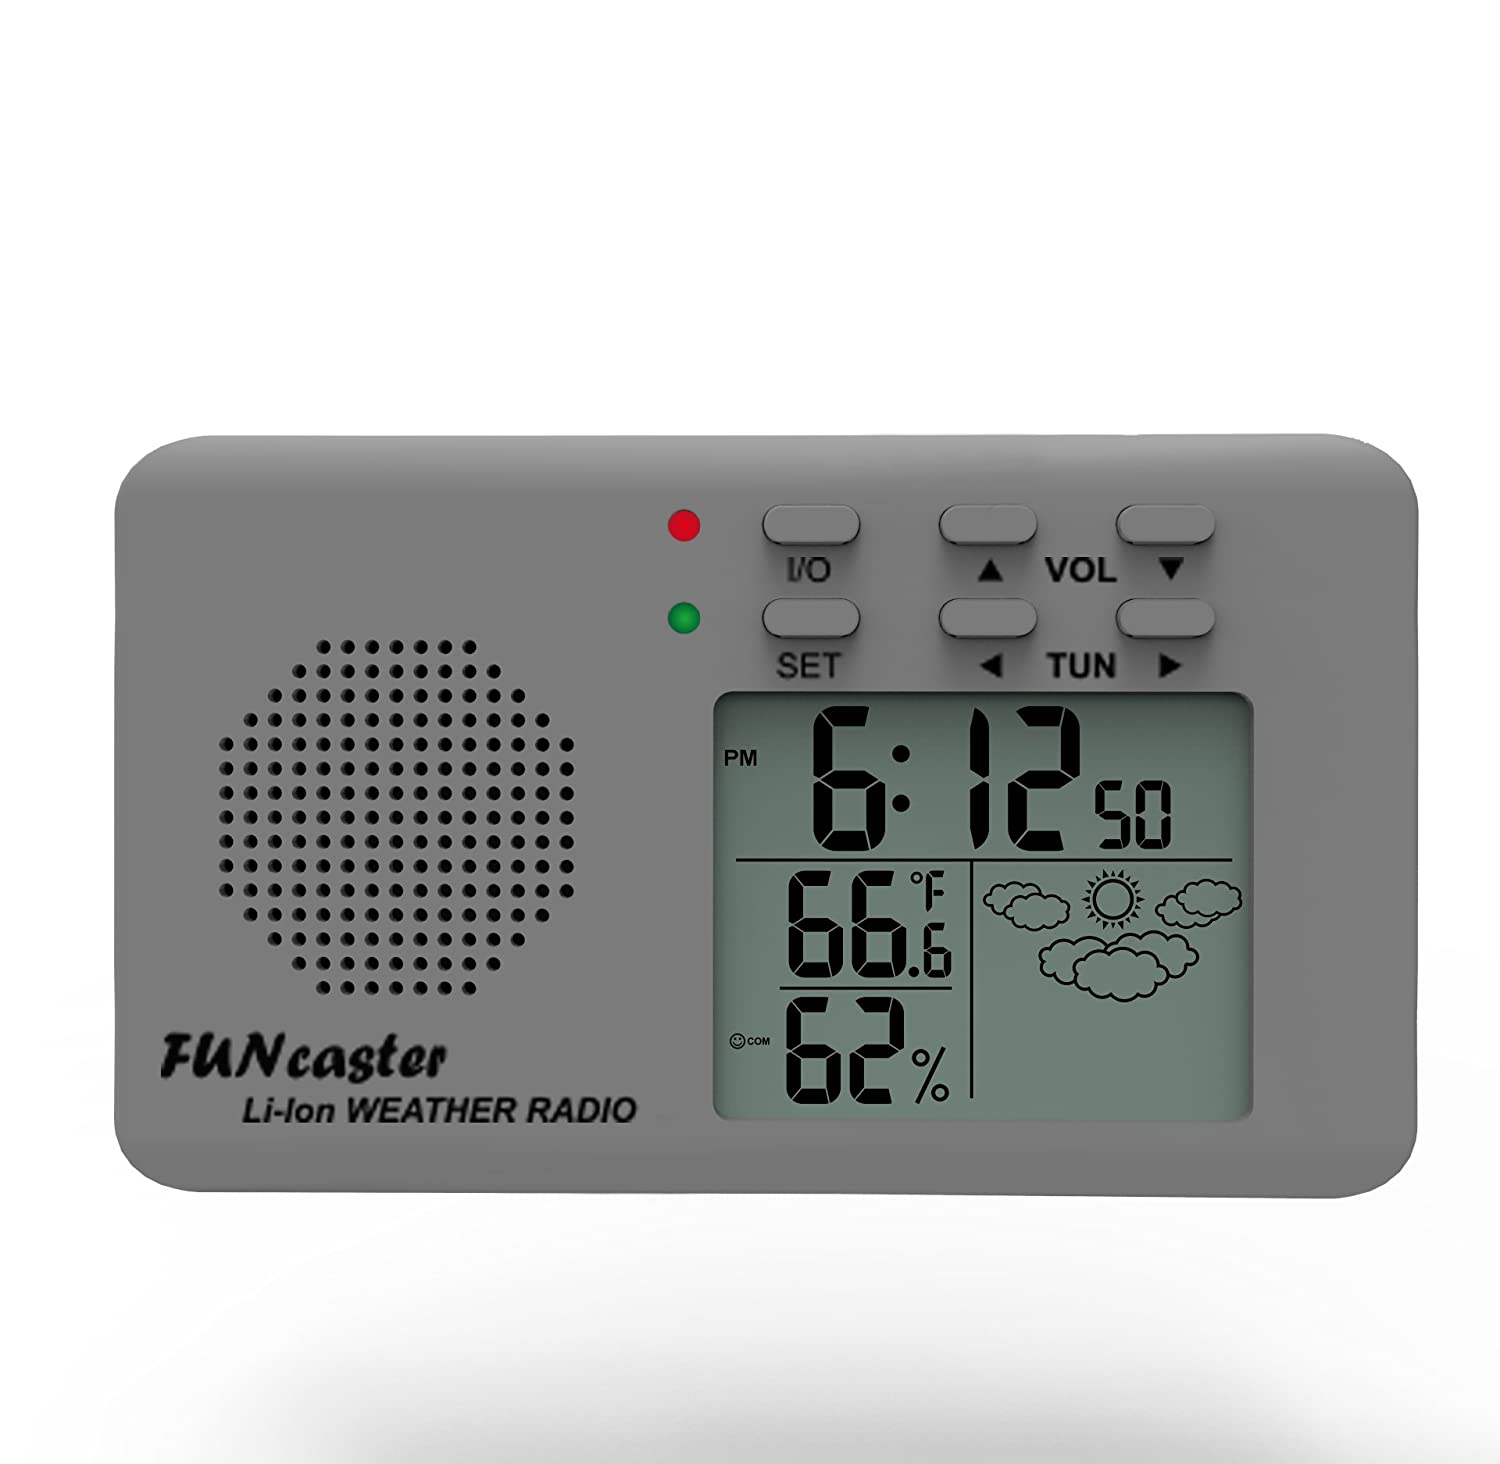 Amazon.com : FUNcaster Golf Cart Weather Display Radio w/Cell ...